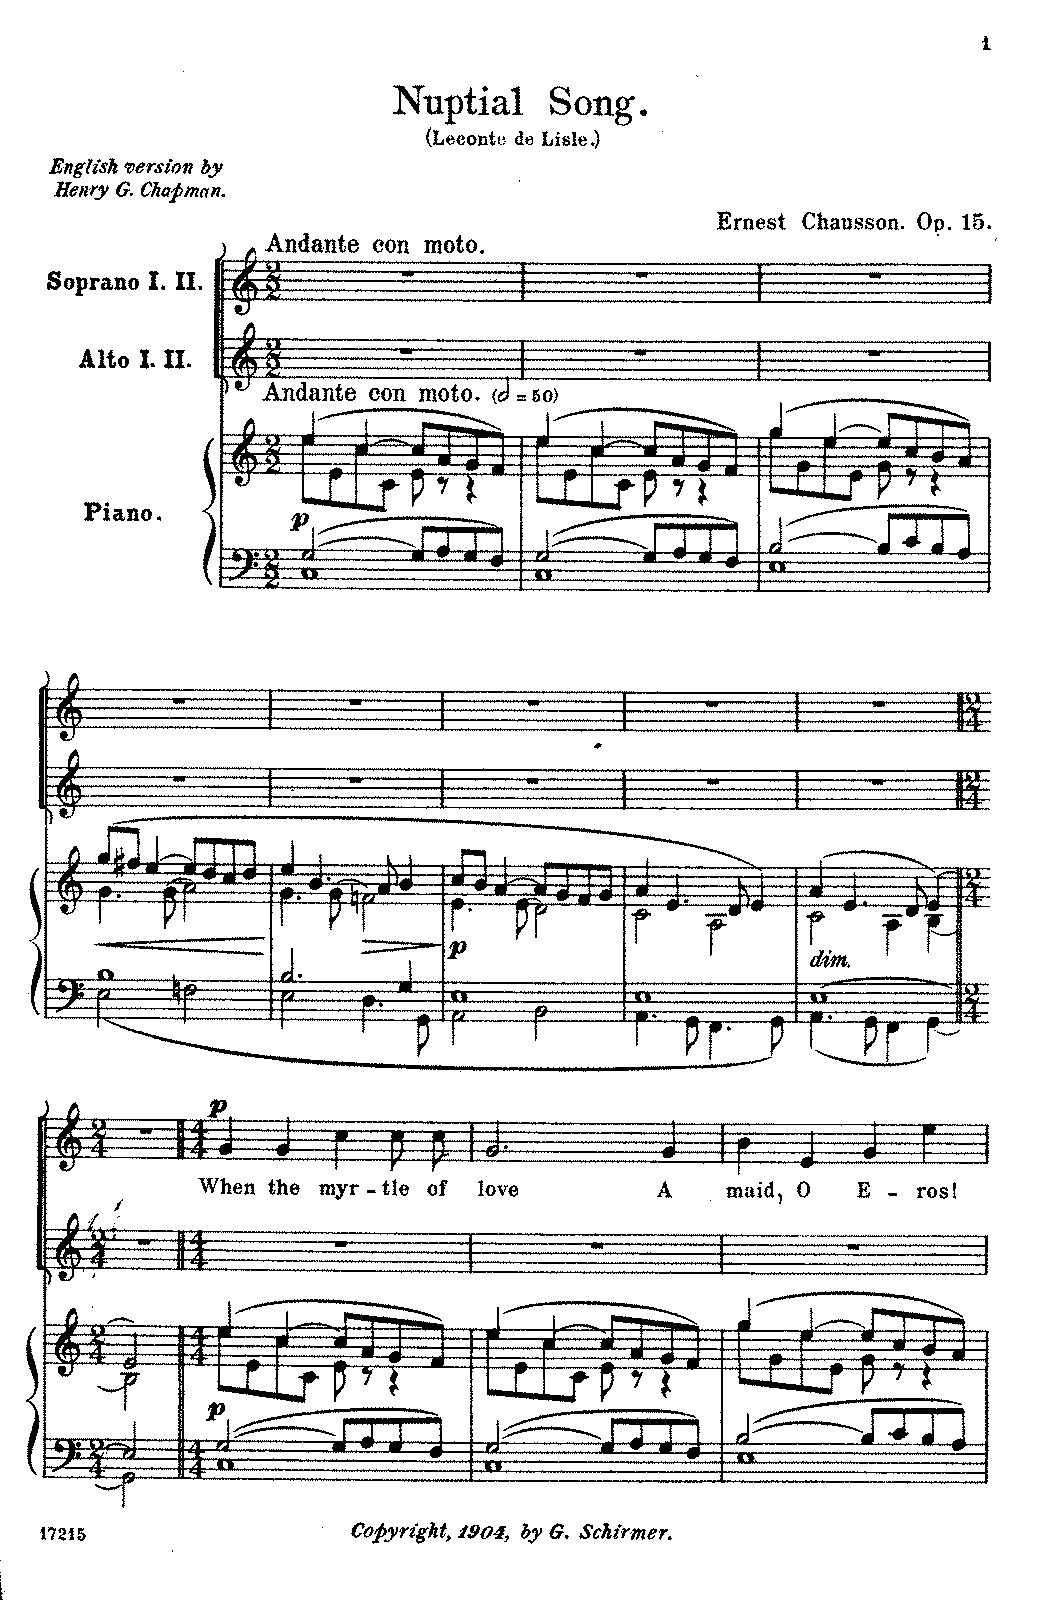 PMLP61307-Chausson - Chant nuptial, Op. 15 (4 voices and piano).pdf